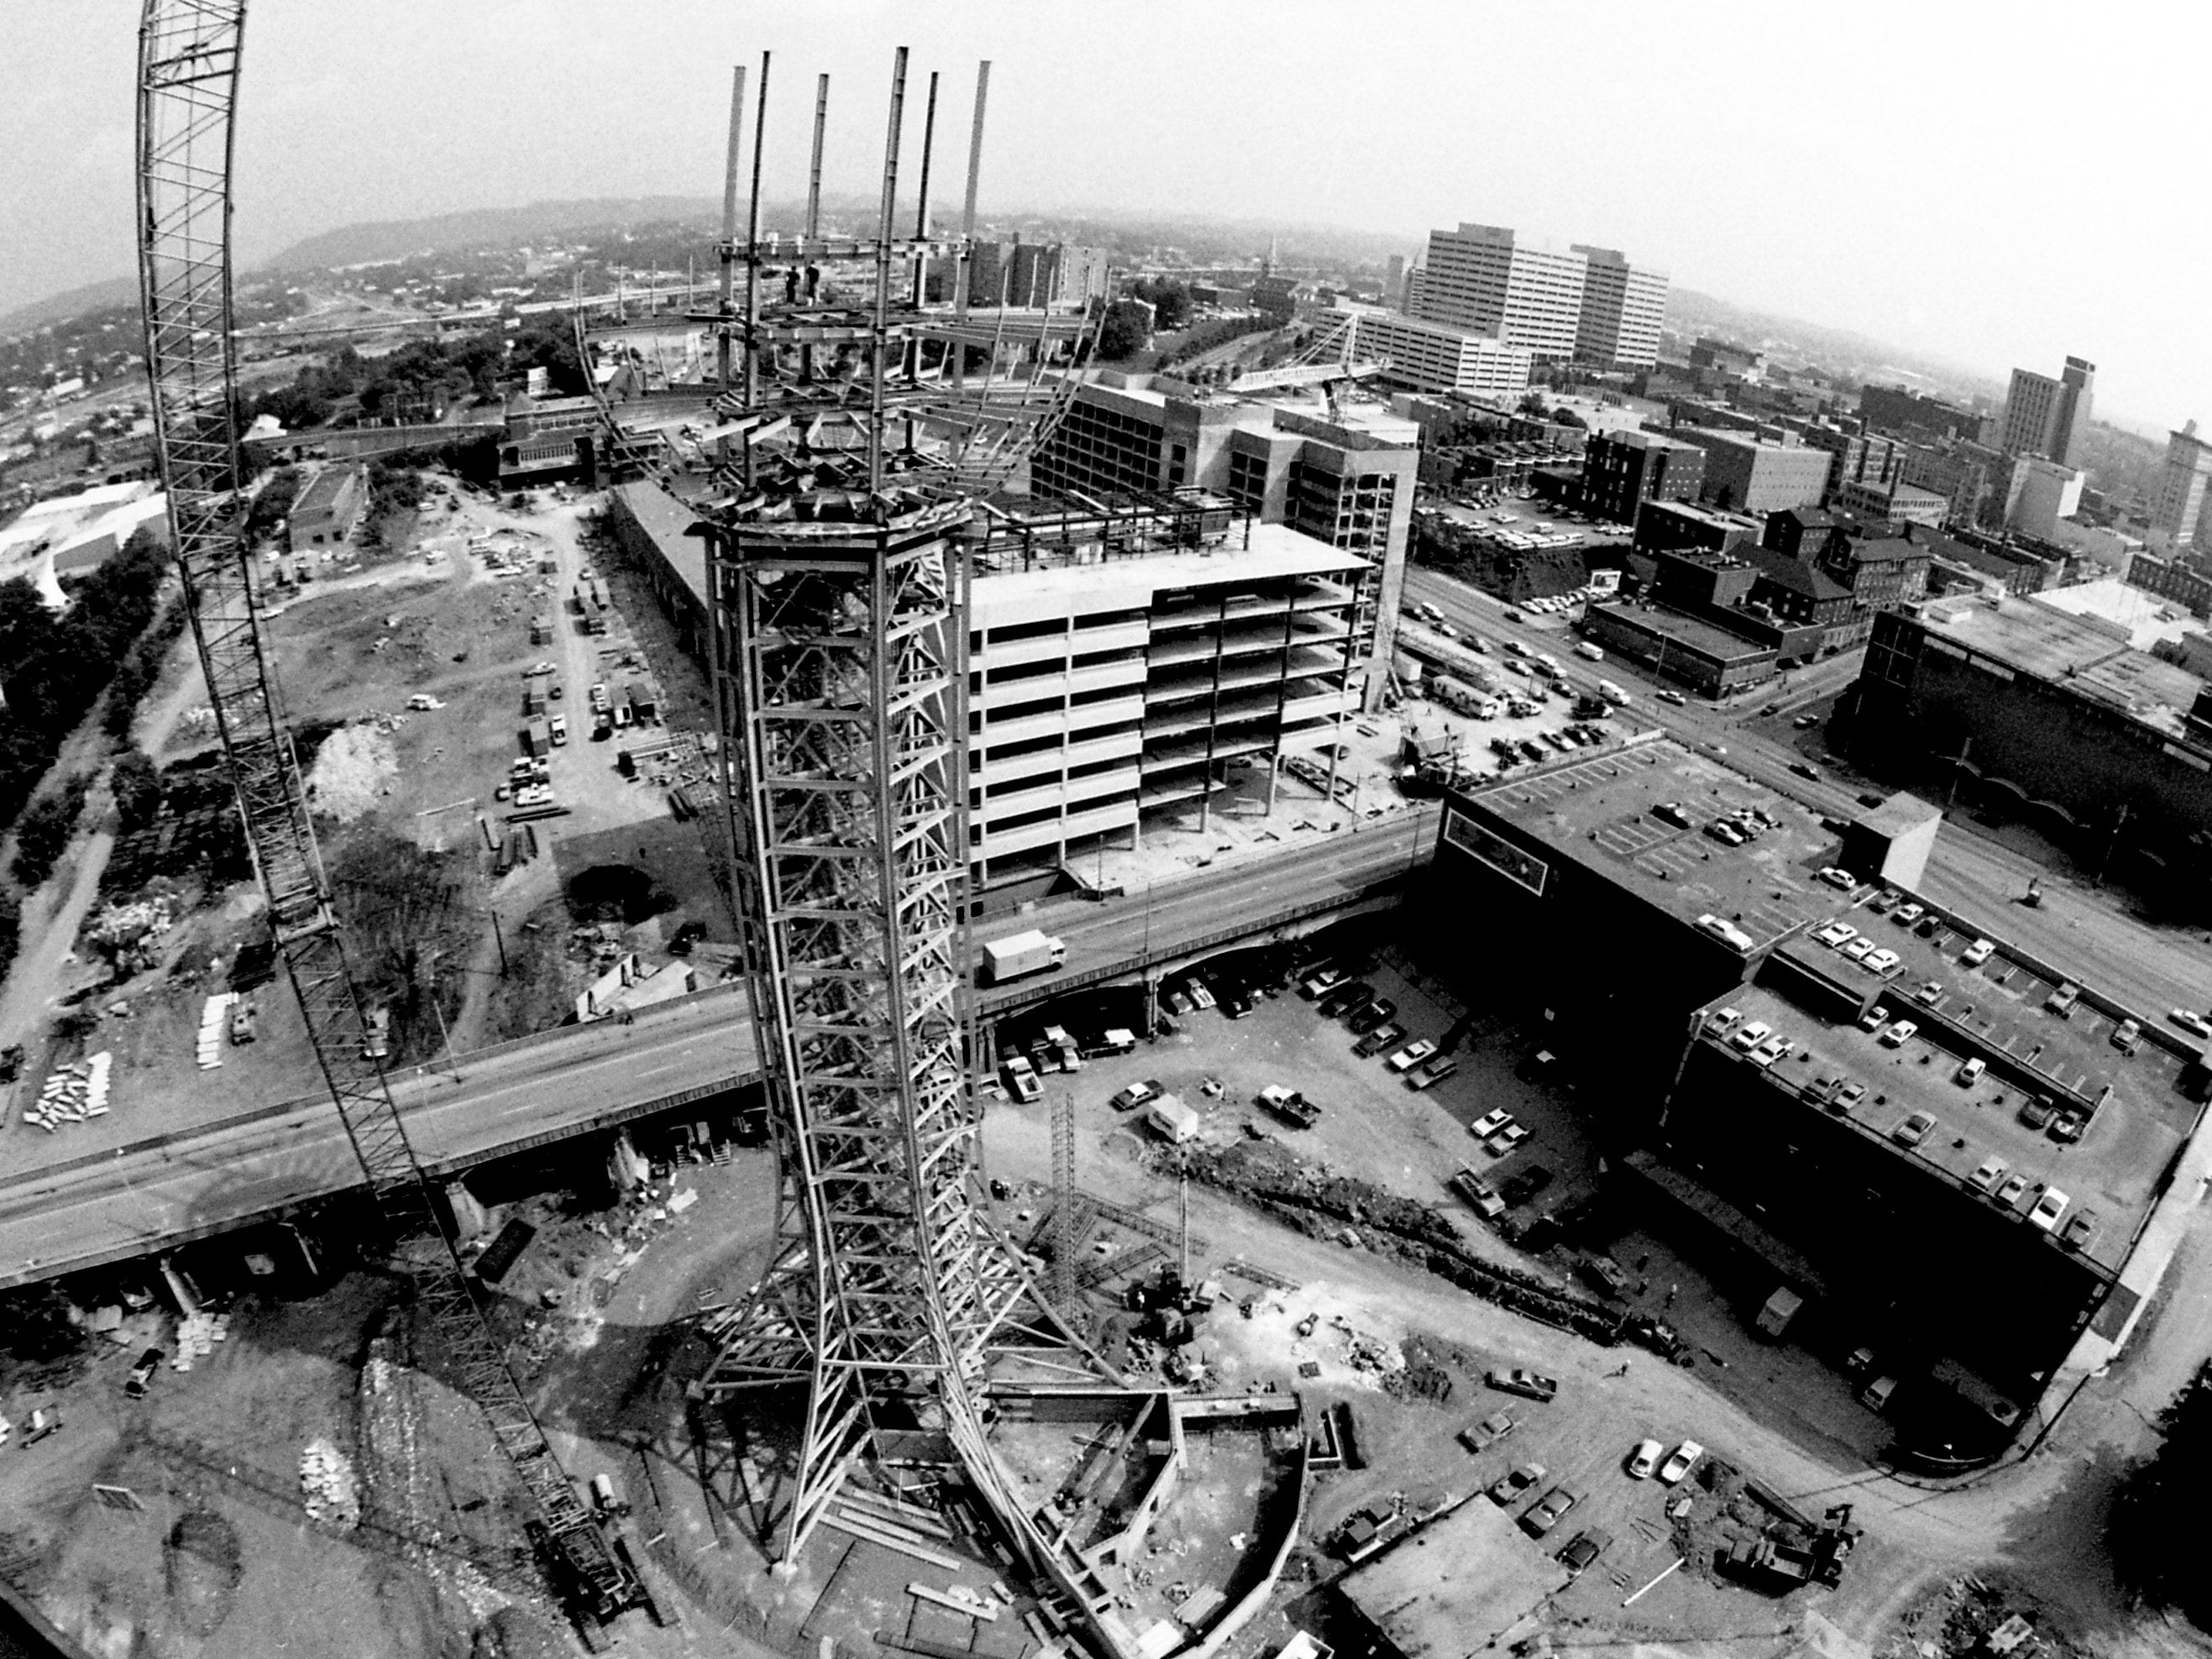 The Sunsphere under construction in 1981. Michael Patrick shot this photo while suspended from a crane 260 feet above ground.